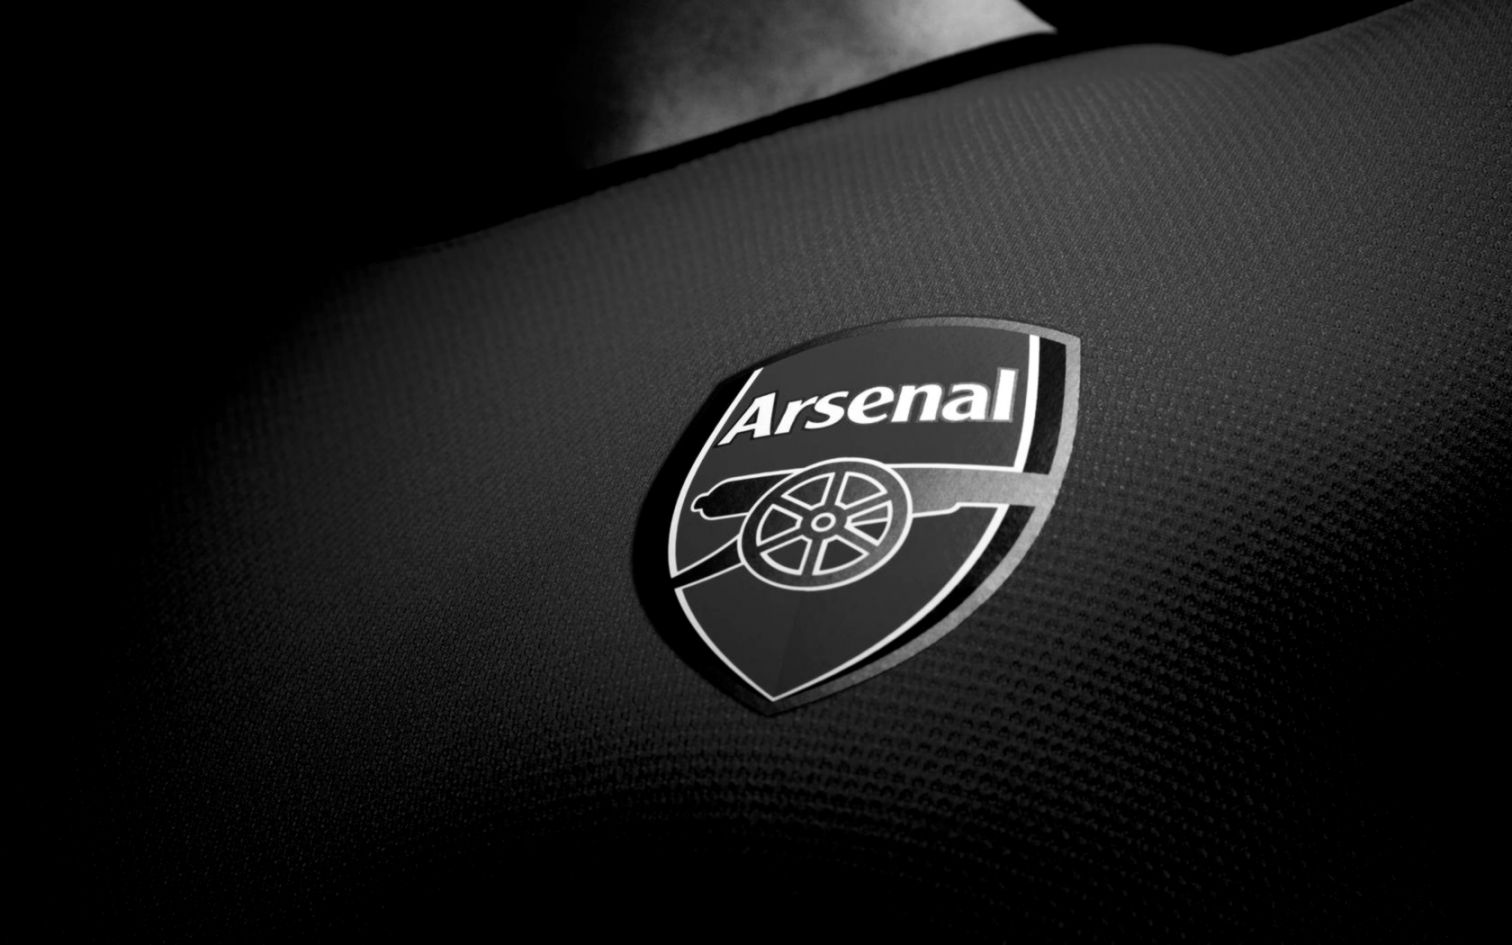 arsenal black wallpaper auto search image